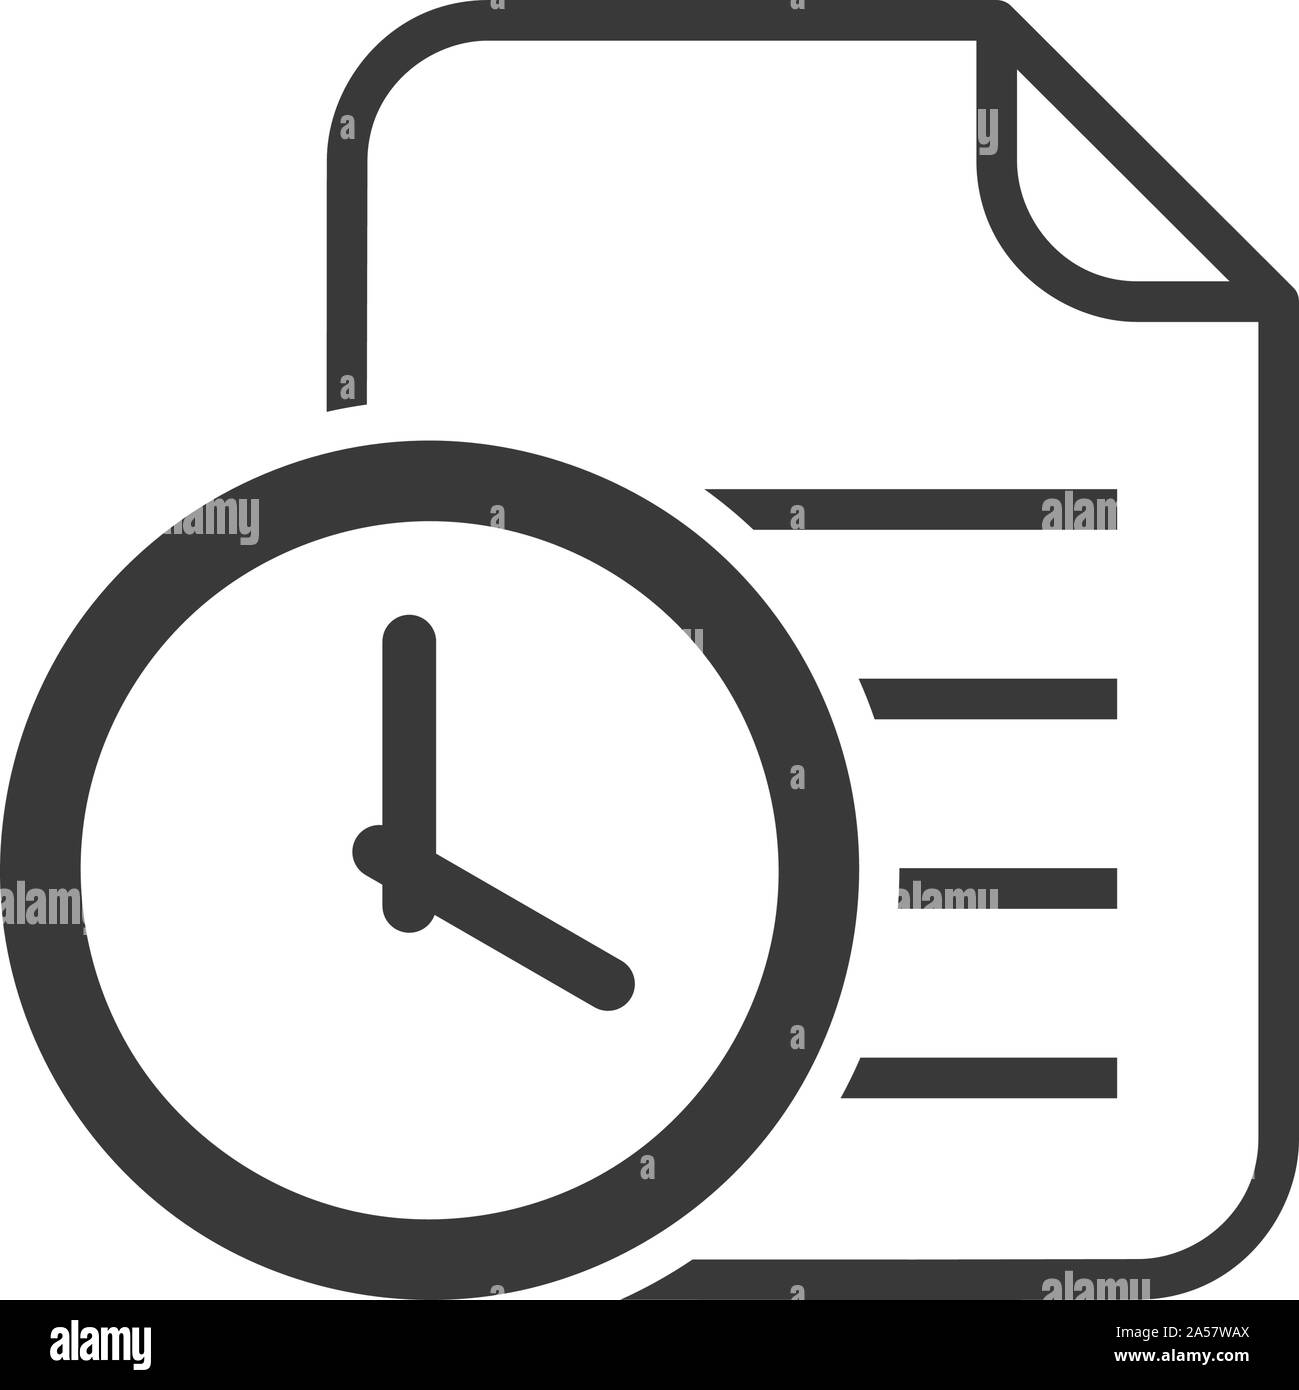 Document version history icon in simple vector Stock Vector Image ...